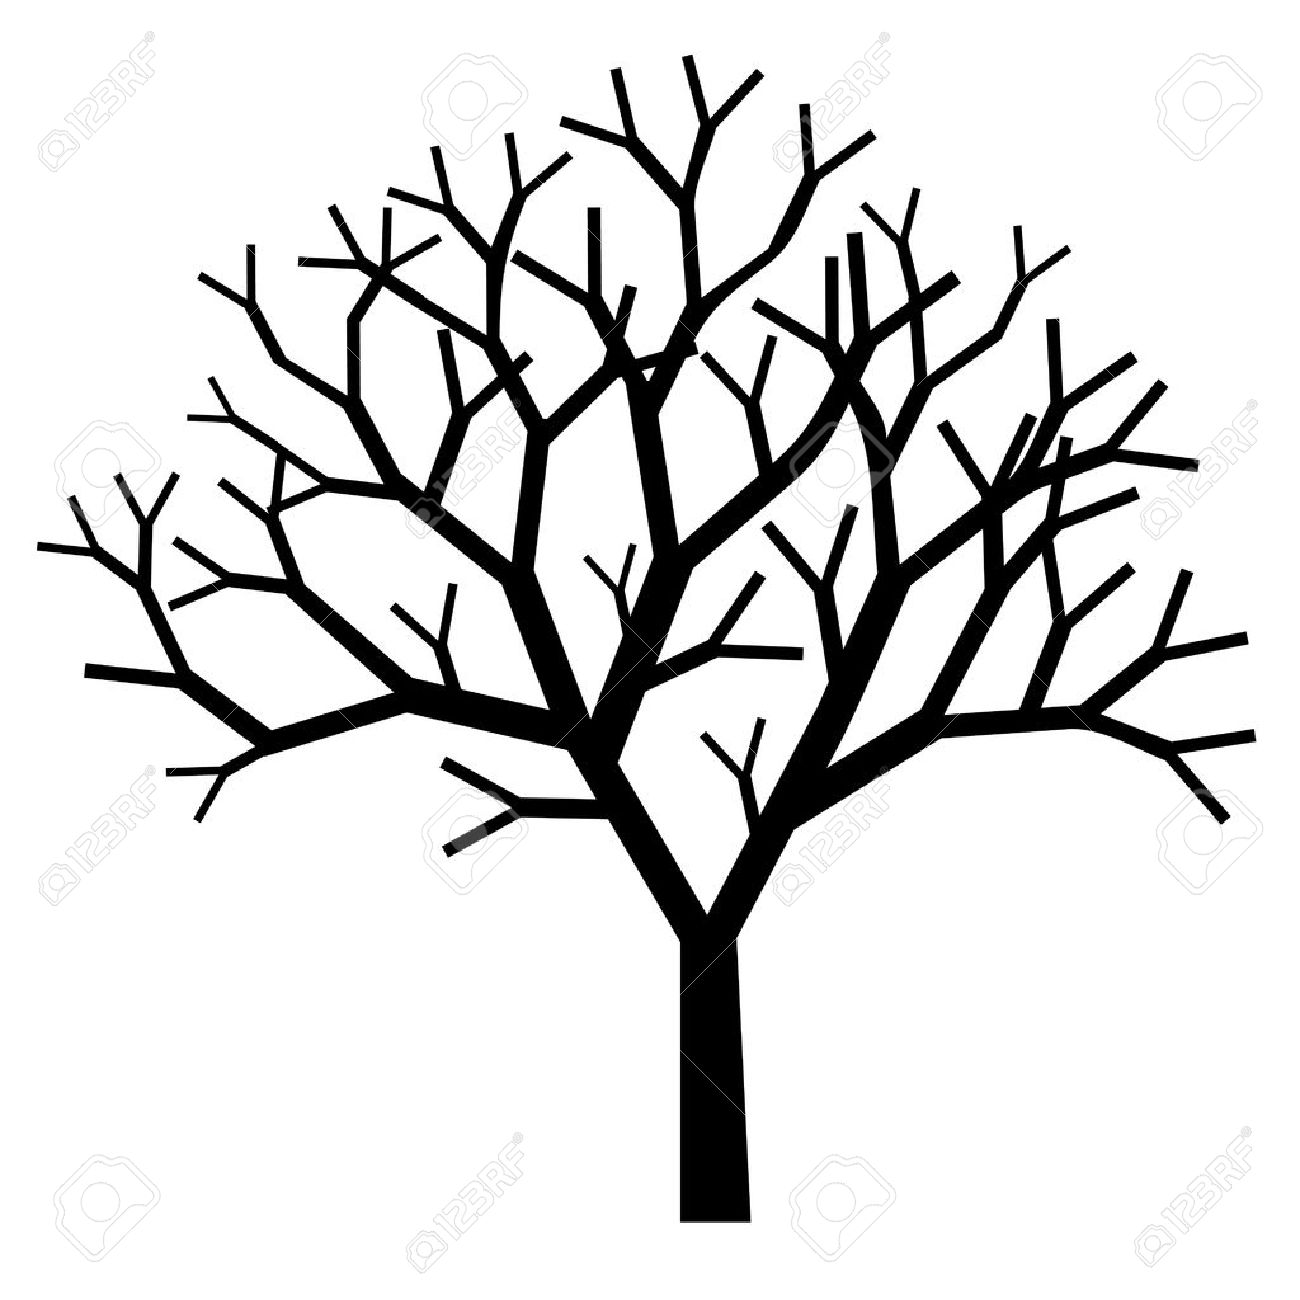 1300x1300 Tree Silhouette Royalty Free Cliparts, Vectors, And Stock